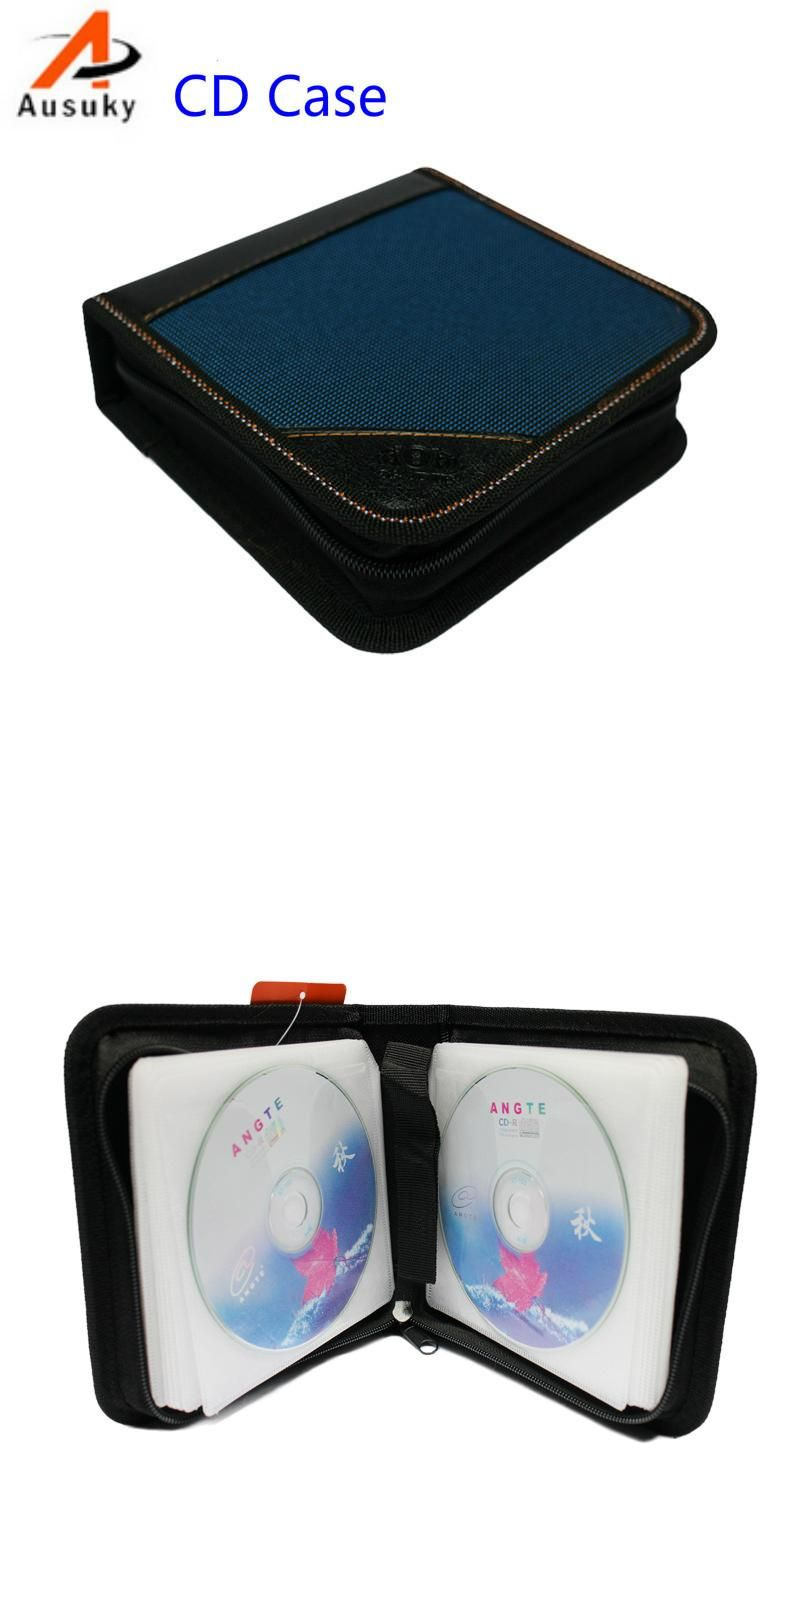 A Ausuky Portable 40 Disc Capacity DVD CD Case controller pencil for Car Media Storage CD storage Bag -20  sc 1 st  Pinterest & A Ausuky Portable 40 Disc Capacity DVD CD Case controller pencil for ...